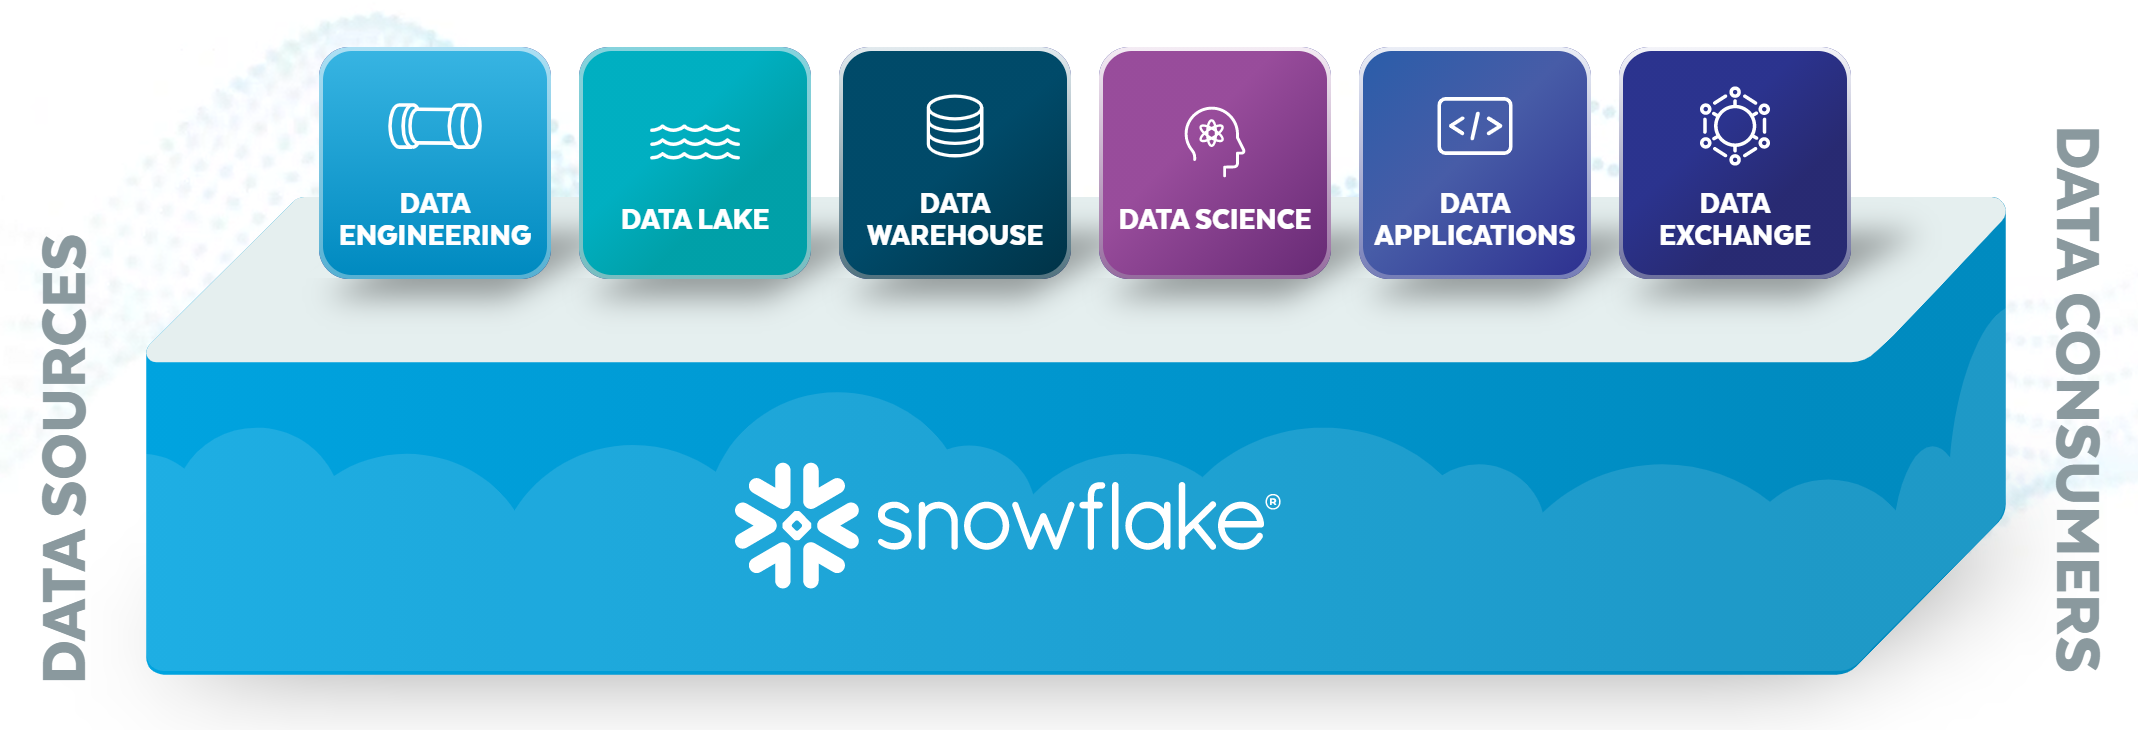 snowflake overview